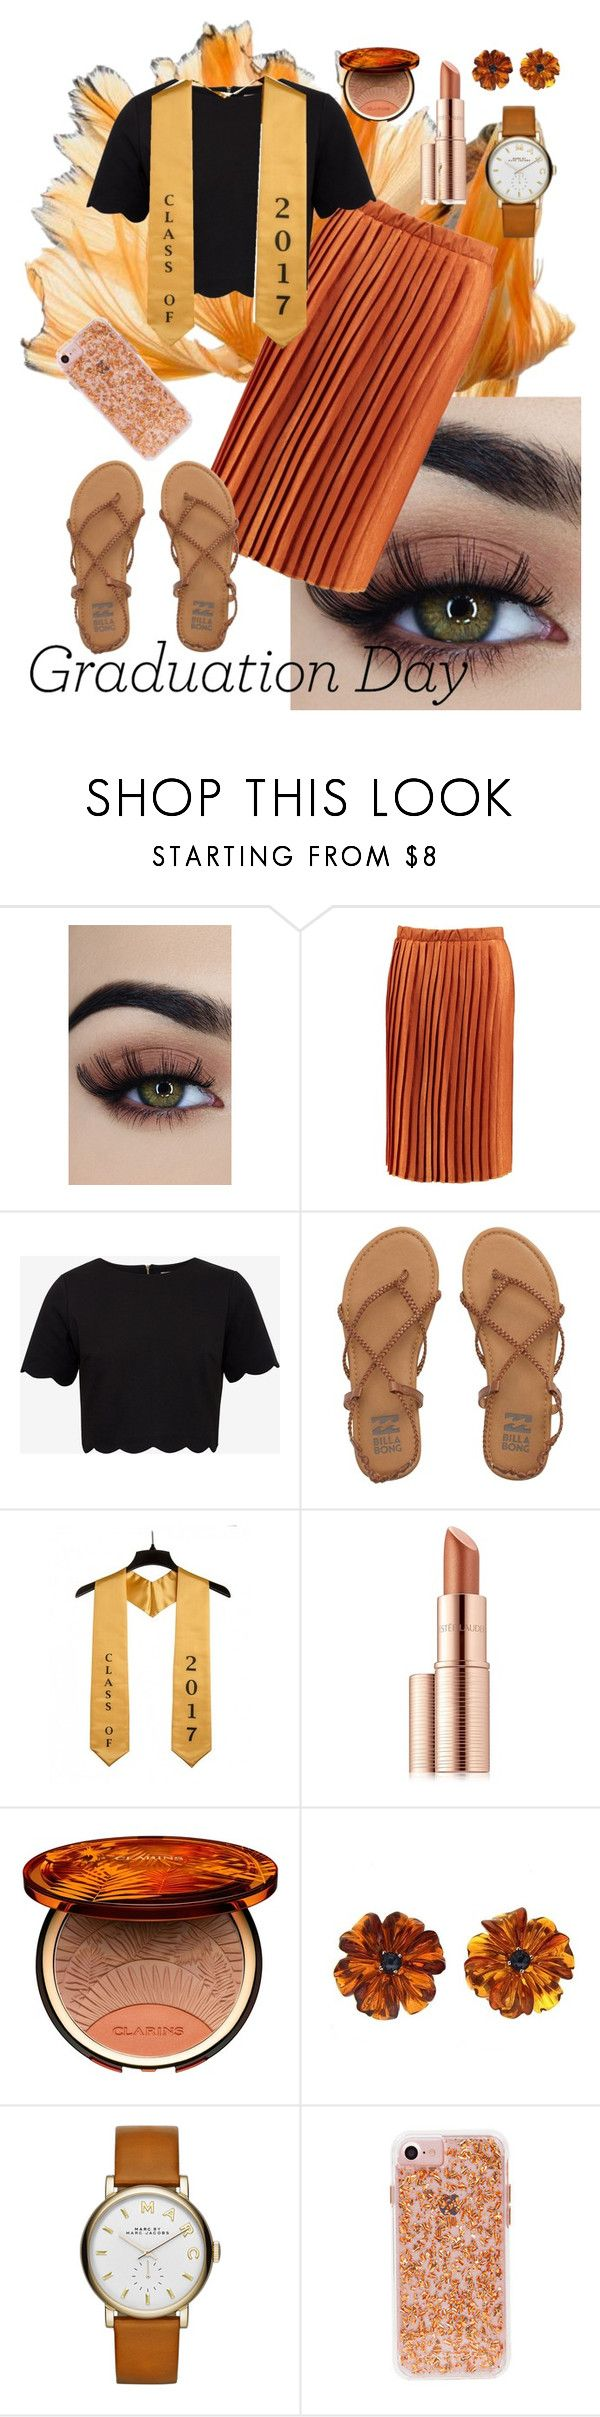 """""""Class of 2017!"""" by maureak ❤ liked on Polyvore featuring Boohoo, Ted Baker, Billabong, Estée Lauder, Clarins, Valentin Magro and Marc by Marc Jacobs"""